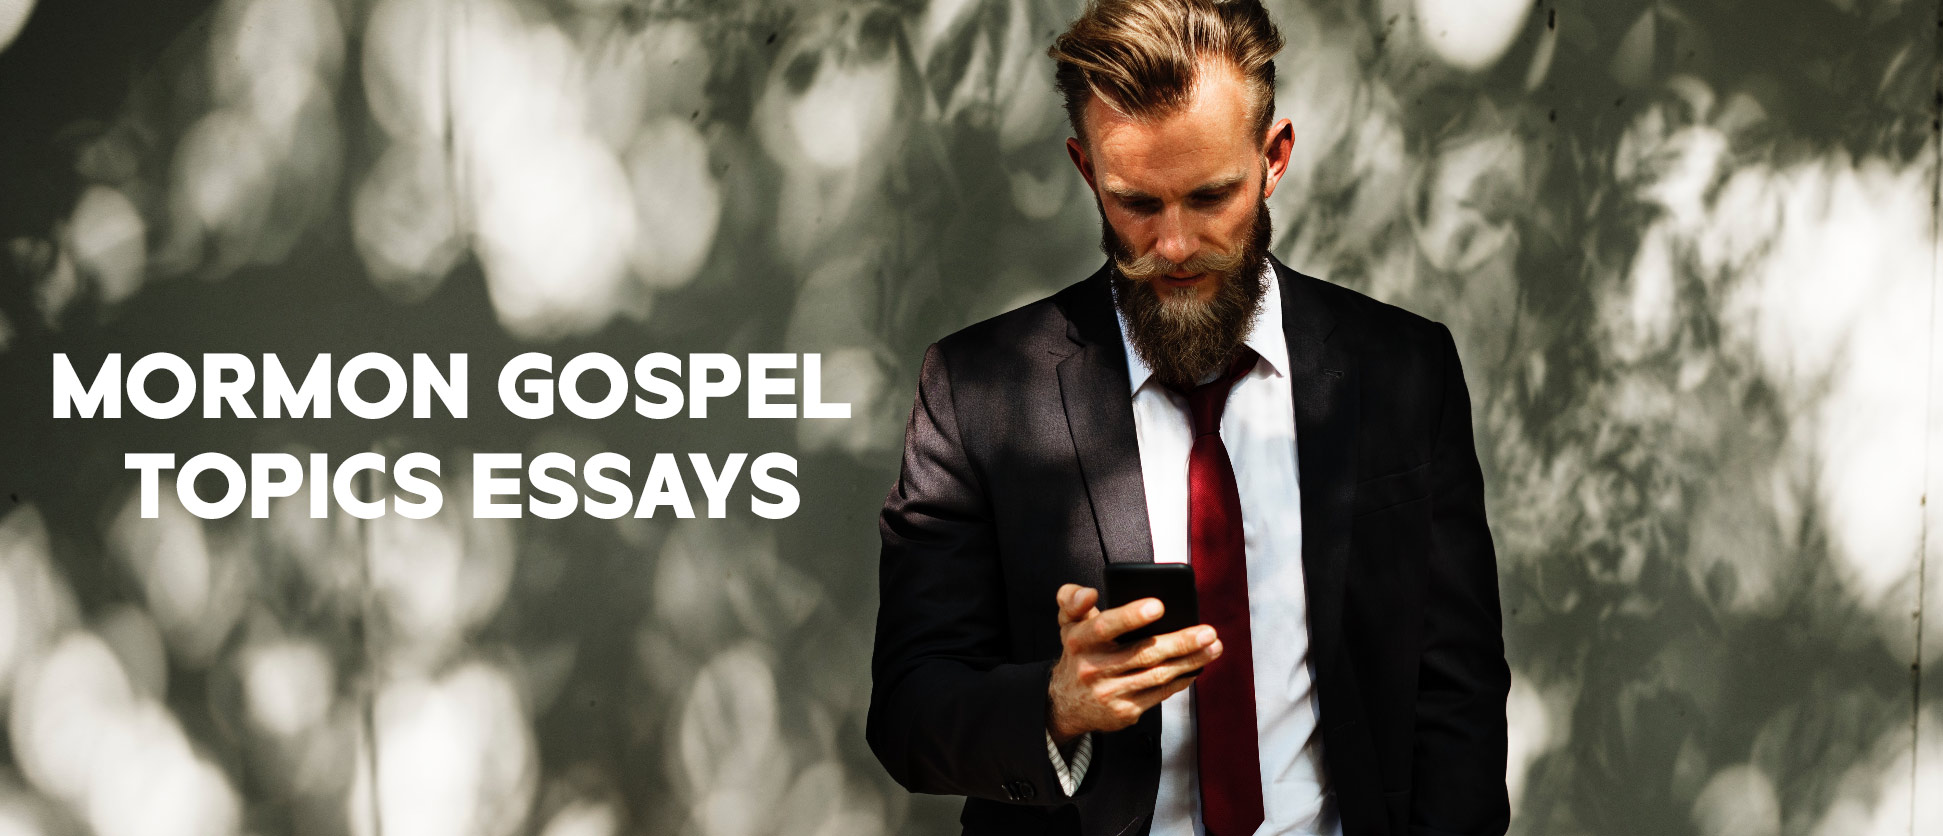 002 Essay Example Gospel Topics Essays Outstanding Pdf Plural Marriage Becoming Like God Full